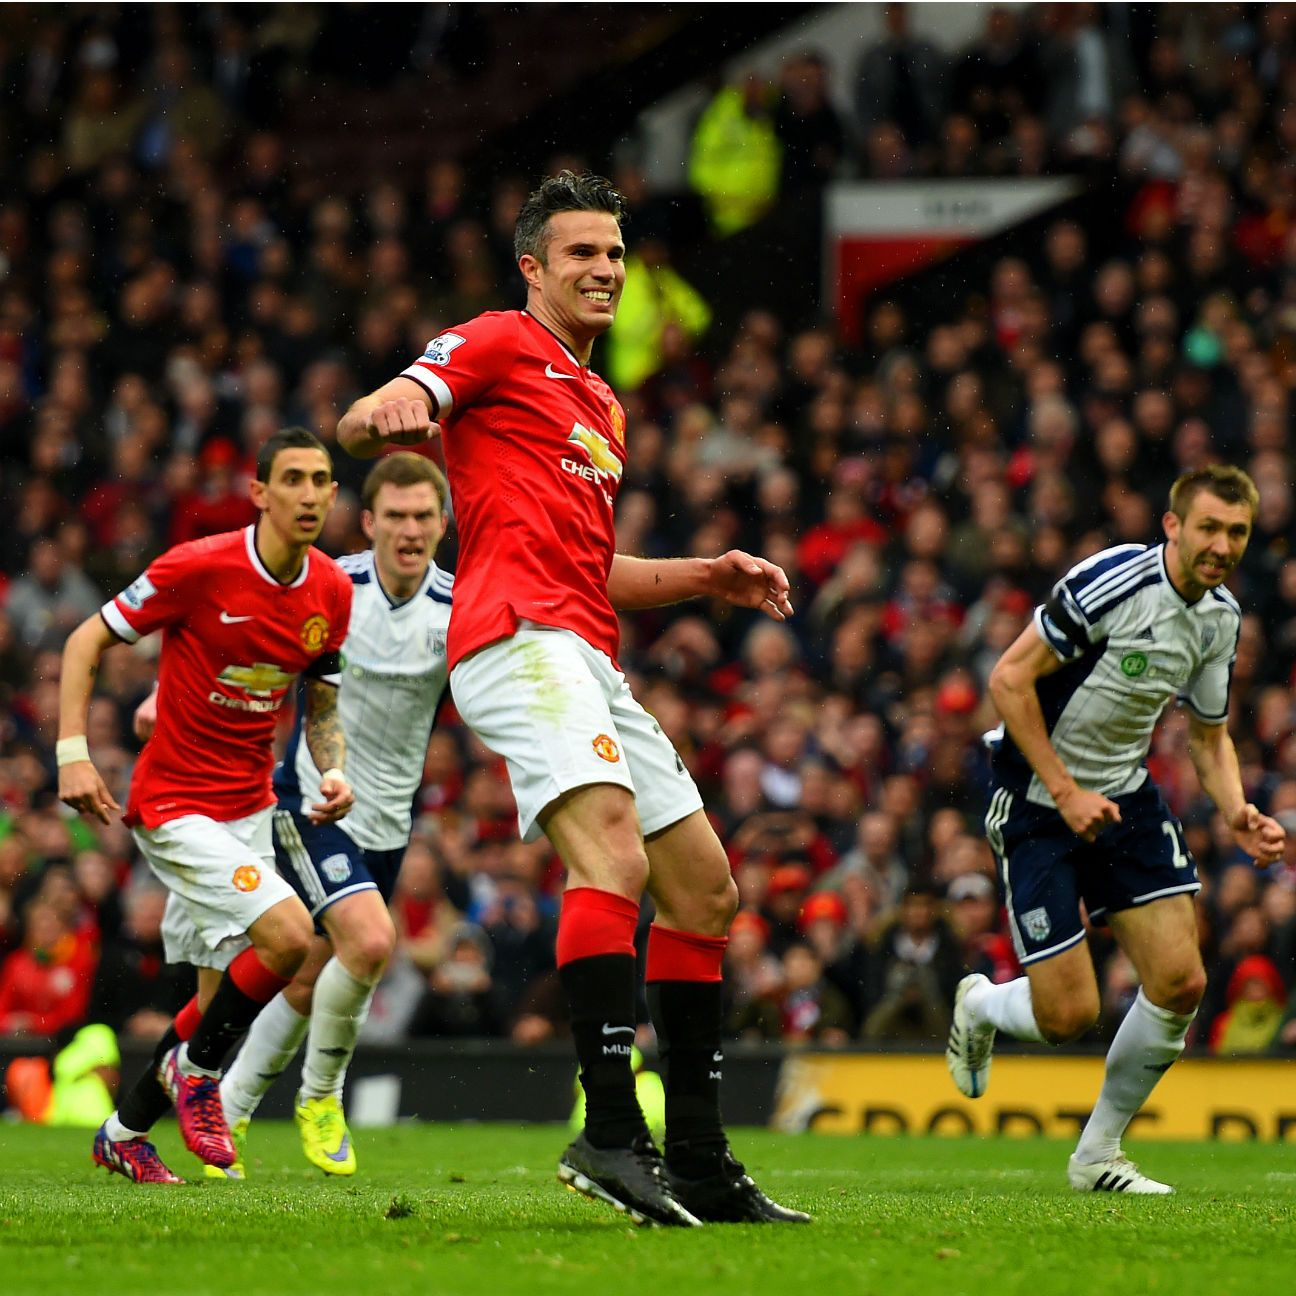 Robin van Persie's missed penalty summed up a miserable day for the Man United attack.